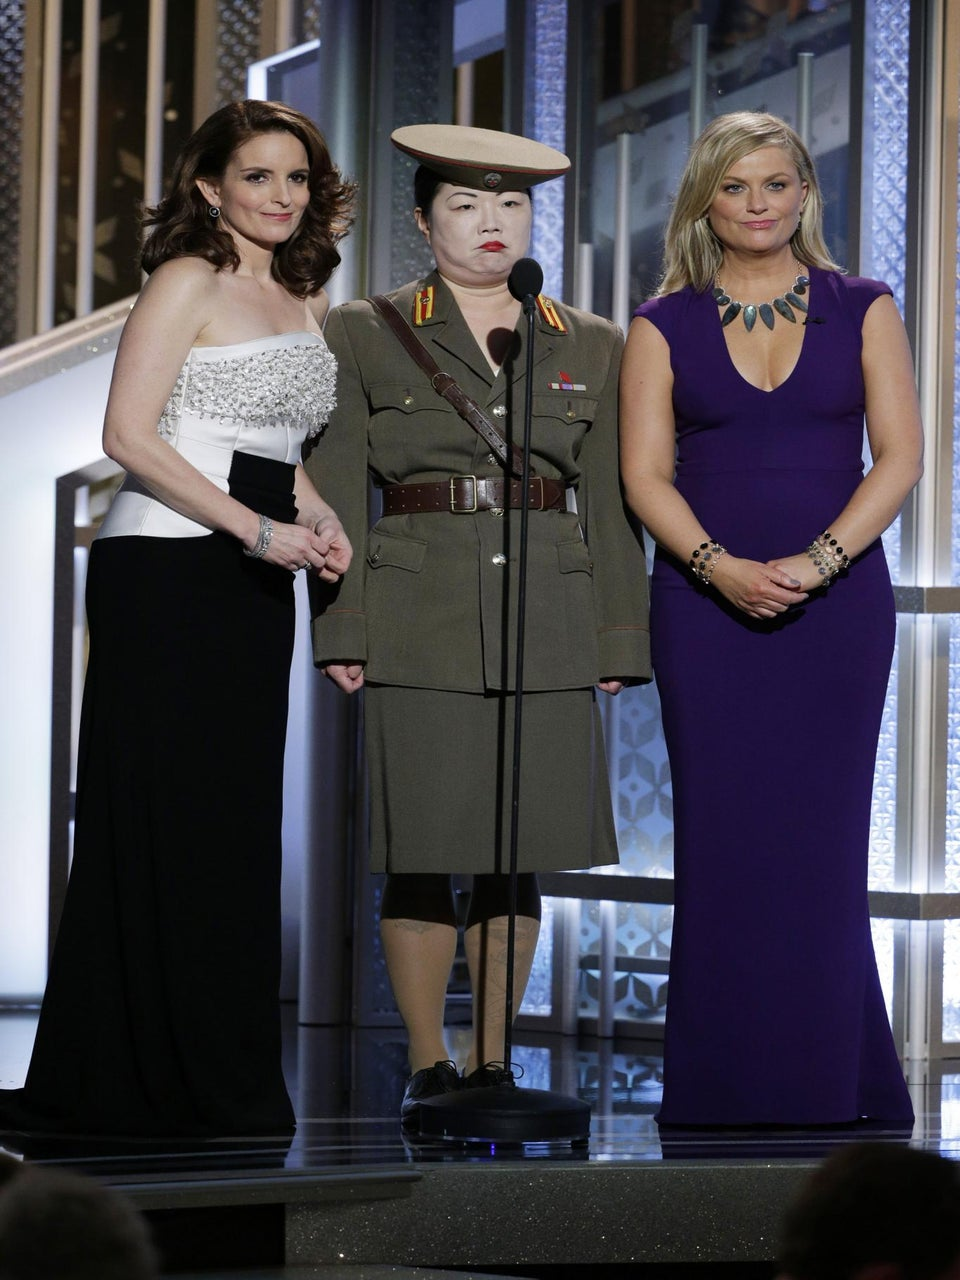 ESSENCE Poll: What Was the Most Cringe-Worthy Moment of the Golden Globes?